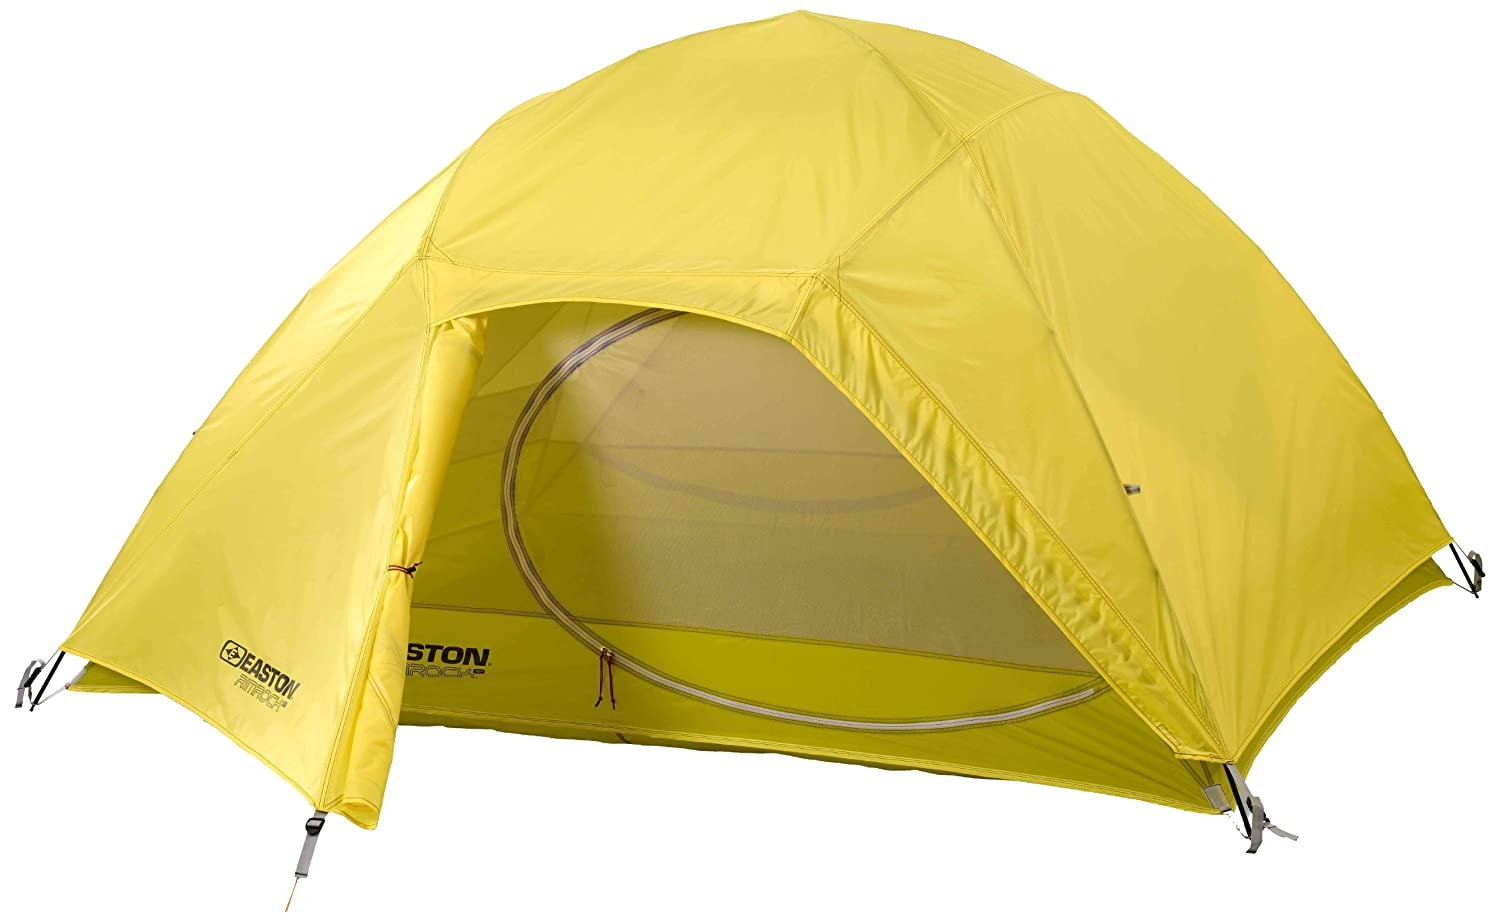 Amazon.com  Easton Mountain Products Rimrock 2-Person Tent for 3 Season  Backpacking Tents  Sports u0026 Outdoors  sc 1 st  Amazon.com & Amazon.com : Easton Mountain Products Rimrock 2-Person Tent for 3 ...